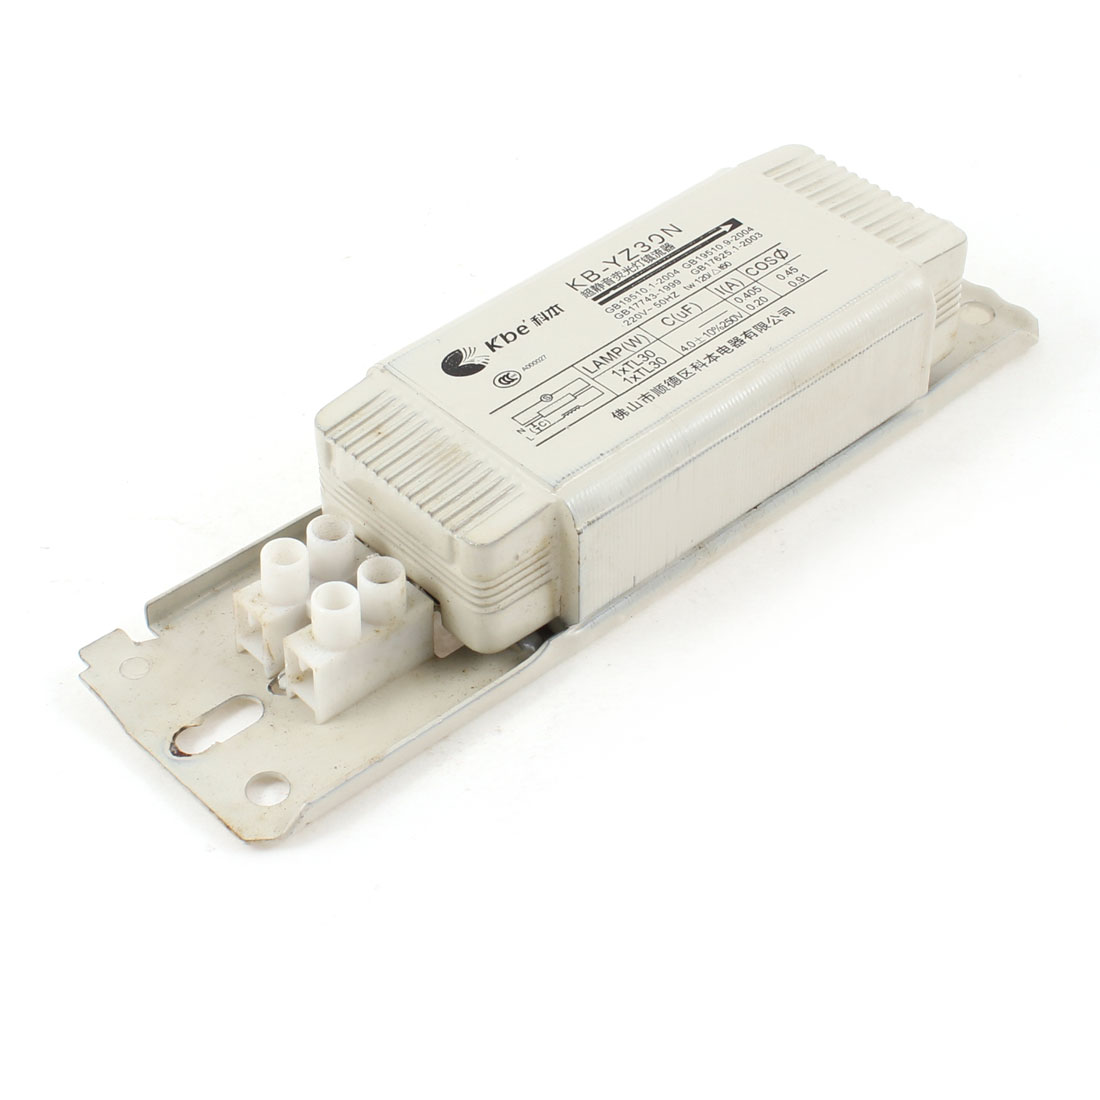 30W Energy Saving Fluorescent Lamps Lights Ballast AC 220V 0.2A